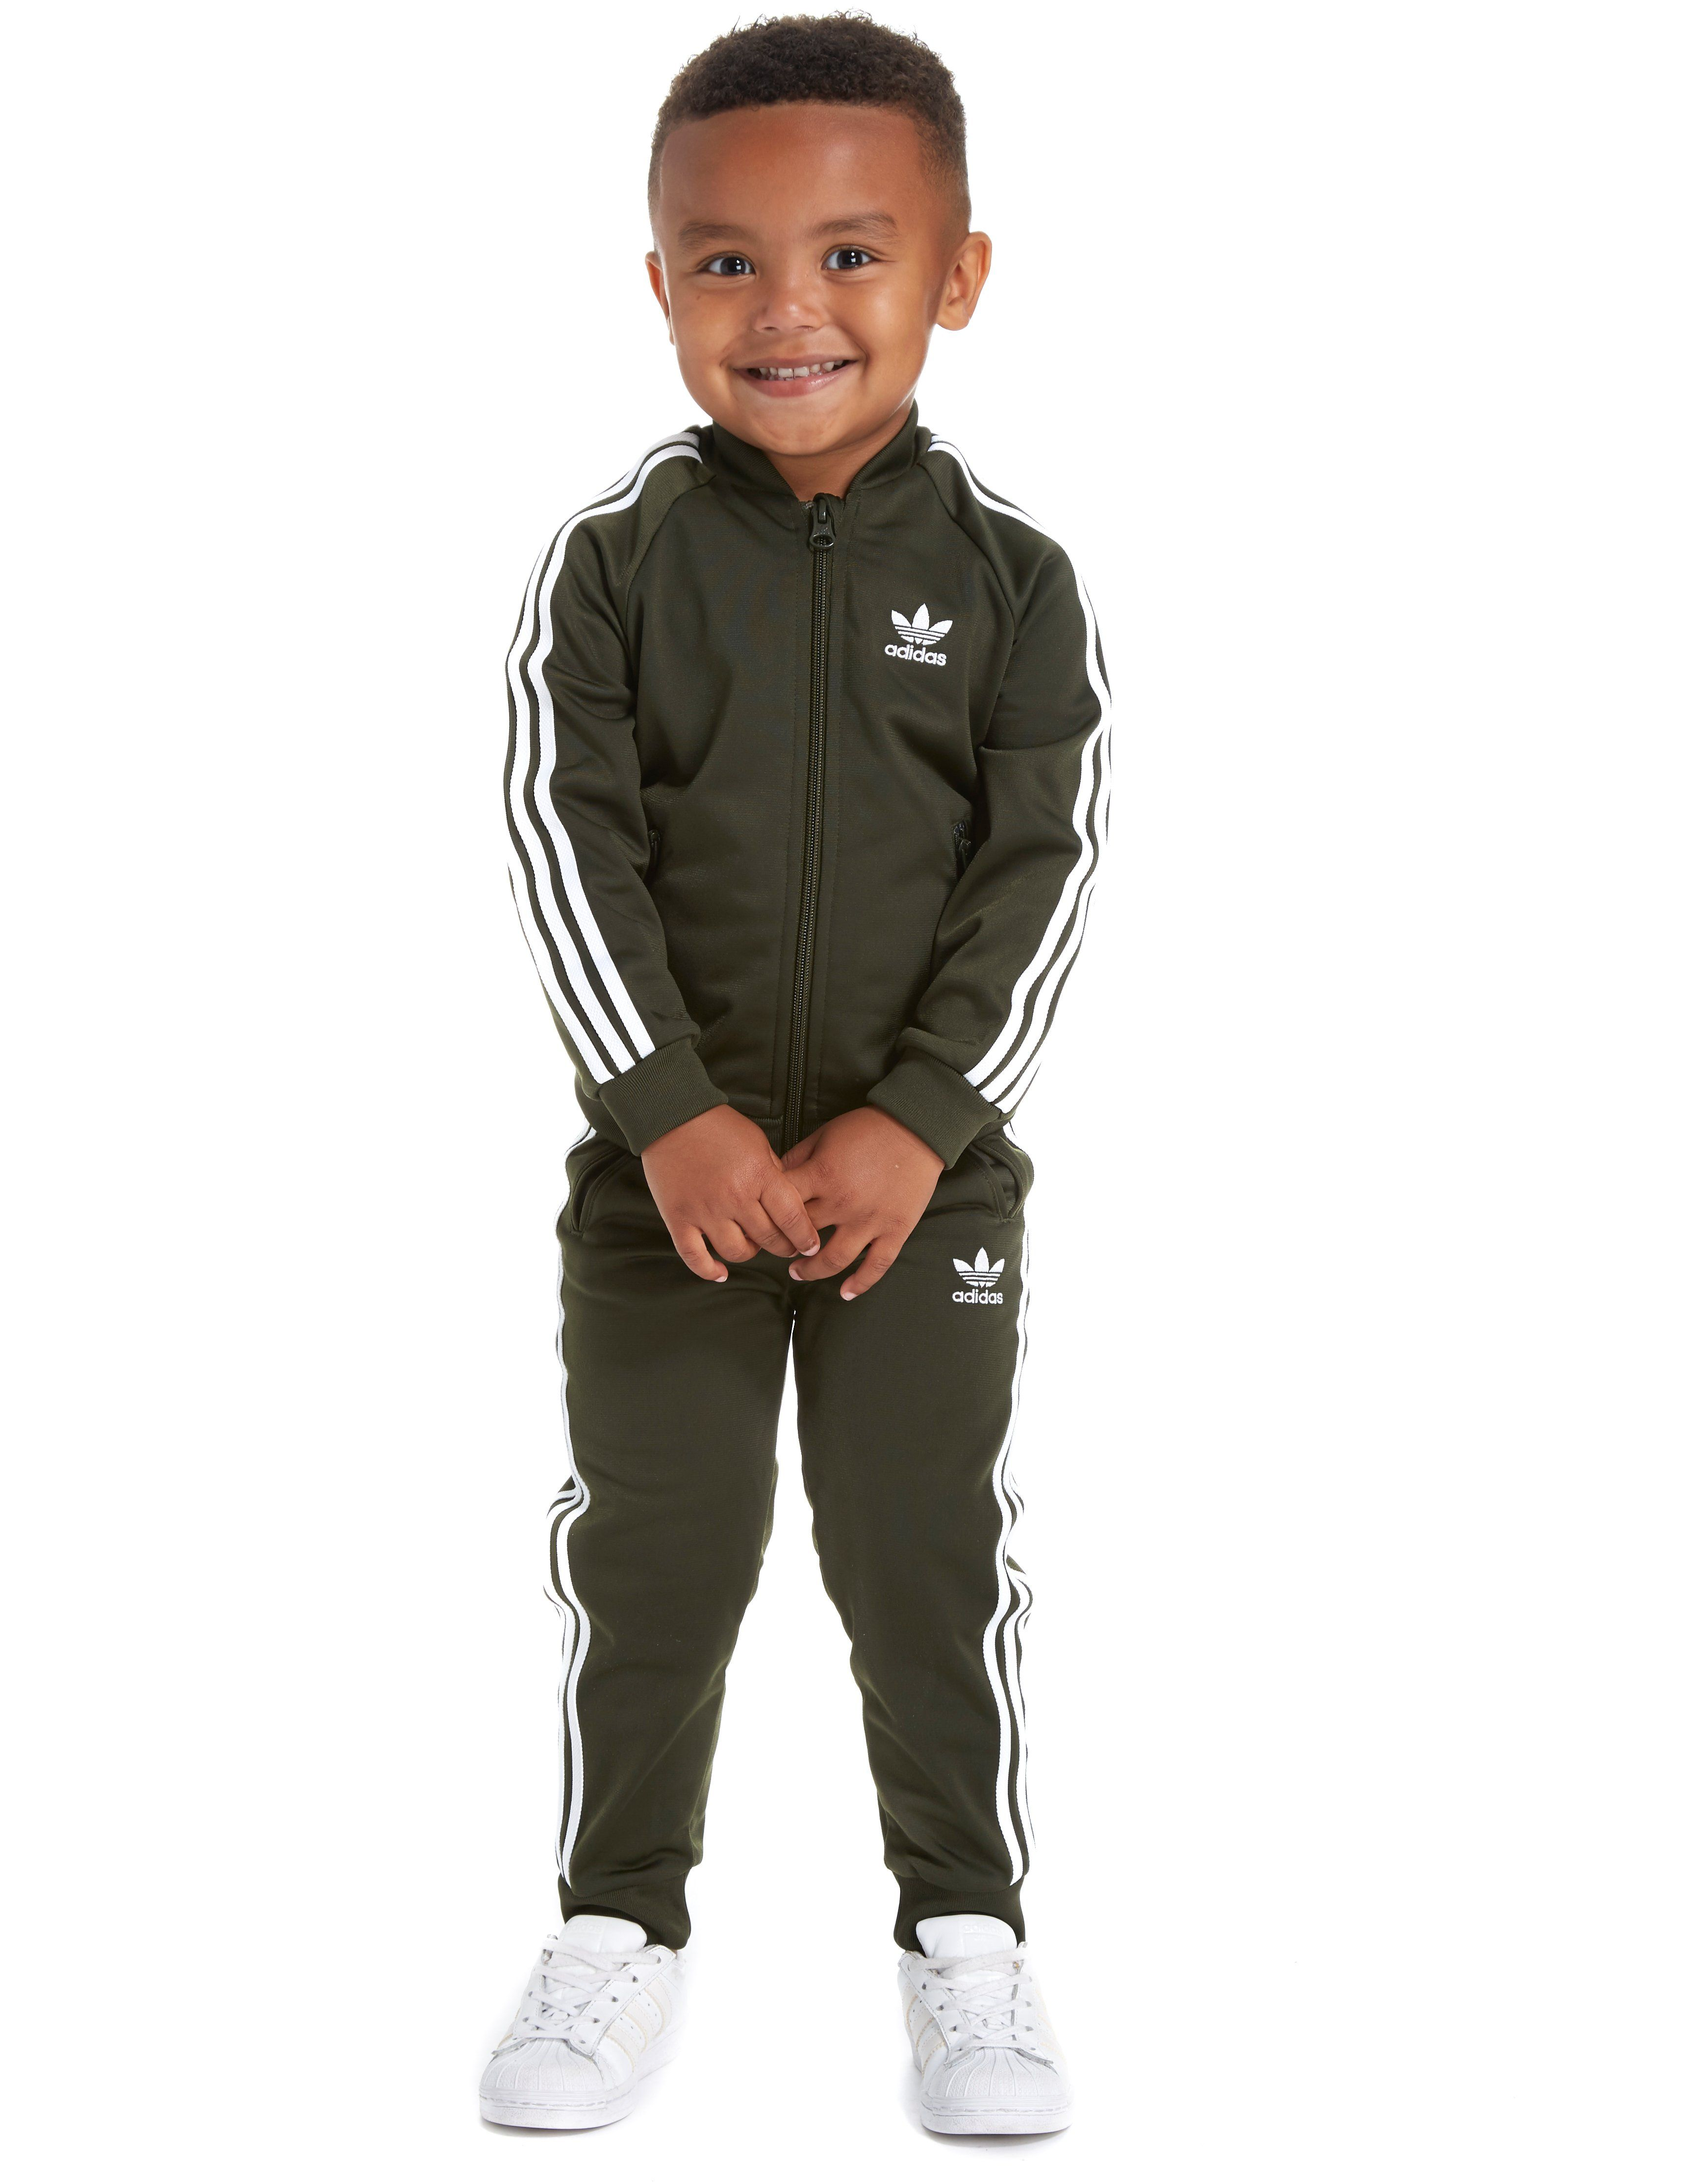 View all kids clothing We have a huge range of kids tracksuits that are perfect for sports or leisure wear. We have the latest kids tracksuits from leading sports brands such as Nike, adidas, Lonsdale, Puma and more. All our kids tracksuits are available at great prices and a range of different sizes.